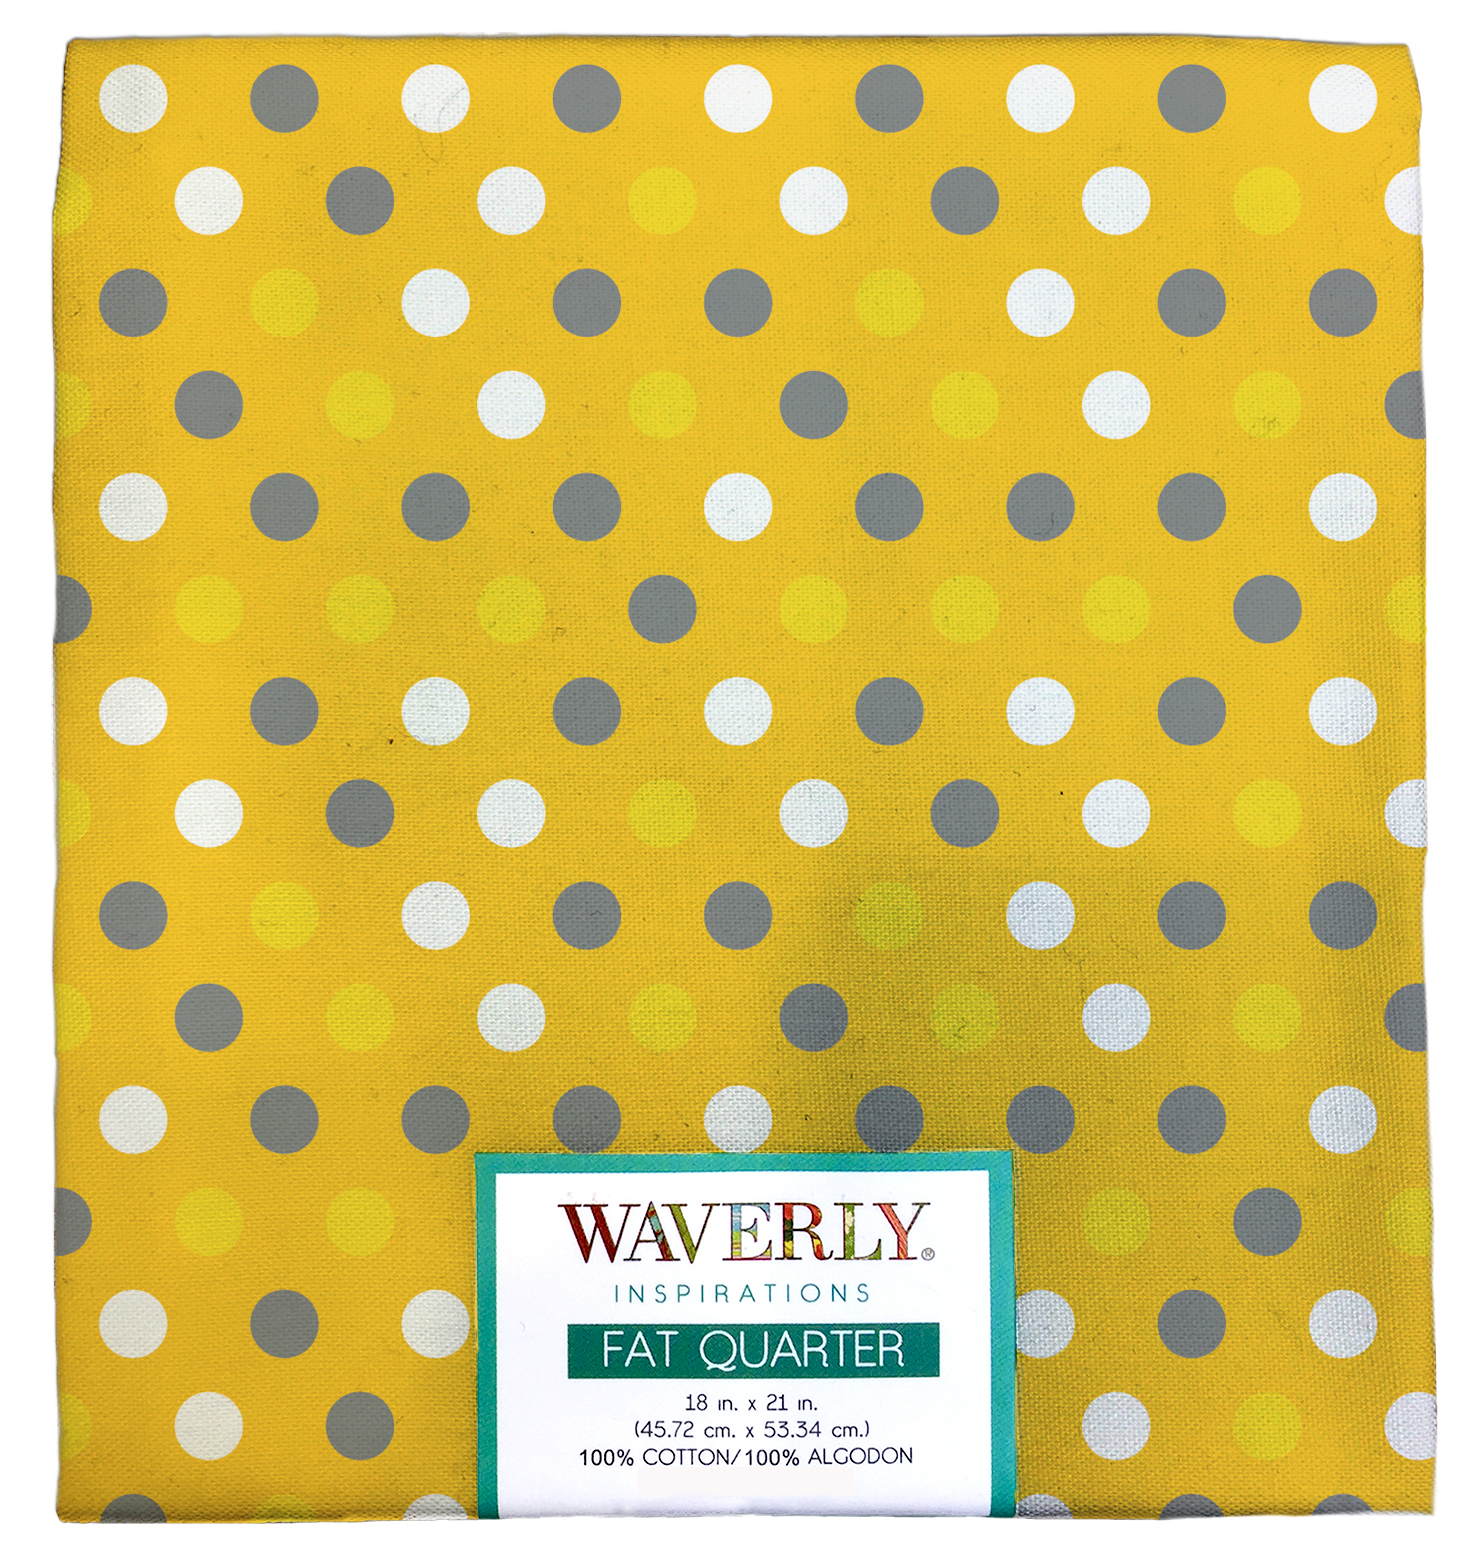 "Waverly Inspiration Cotton Fat Quarter 18"" x 21"" Multi Dot Sun Fabric, 1 Each"